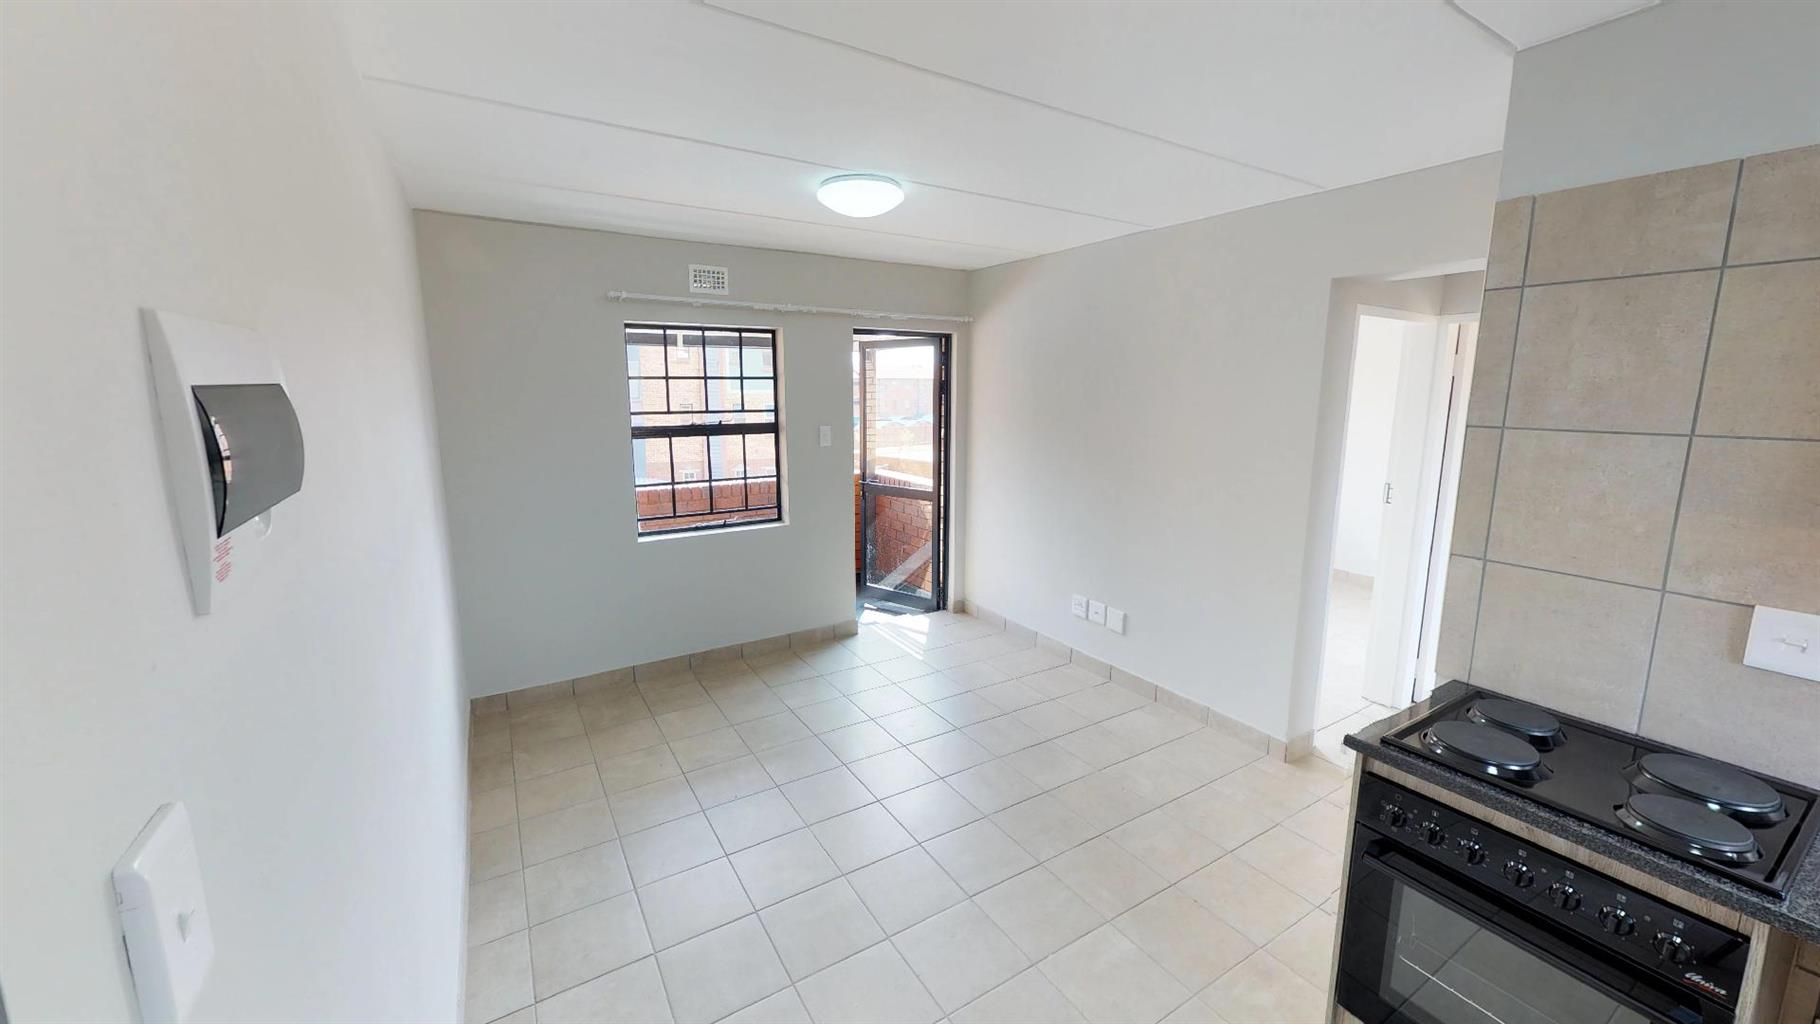 Be the First to me in the Brand new apartment in Pretoria West plus FREE WIFI. Call NOW